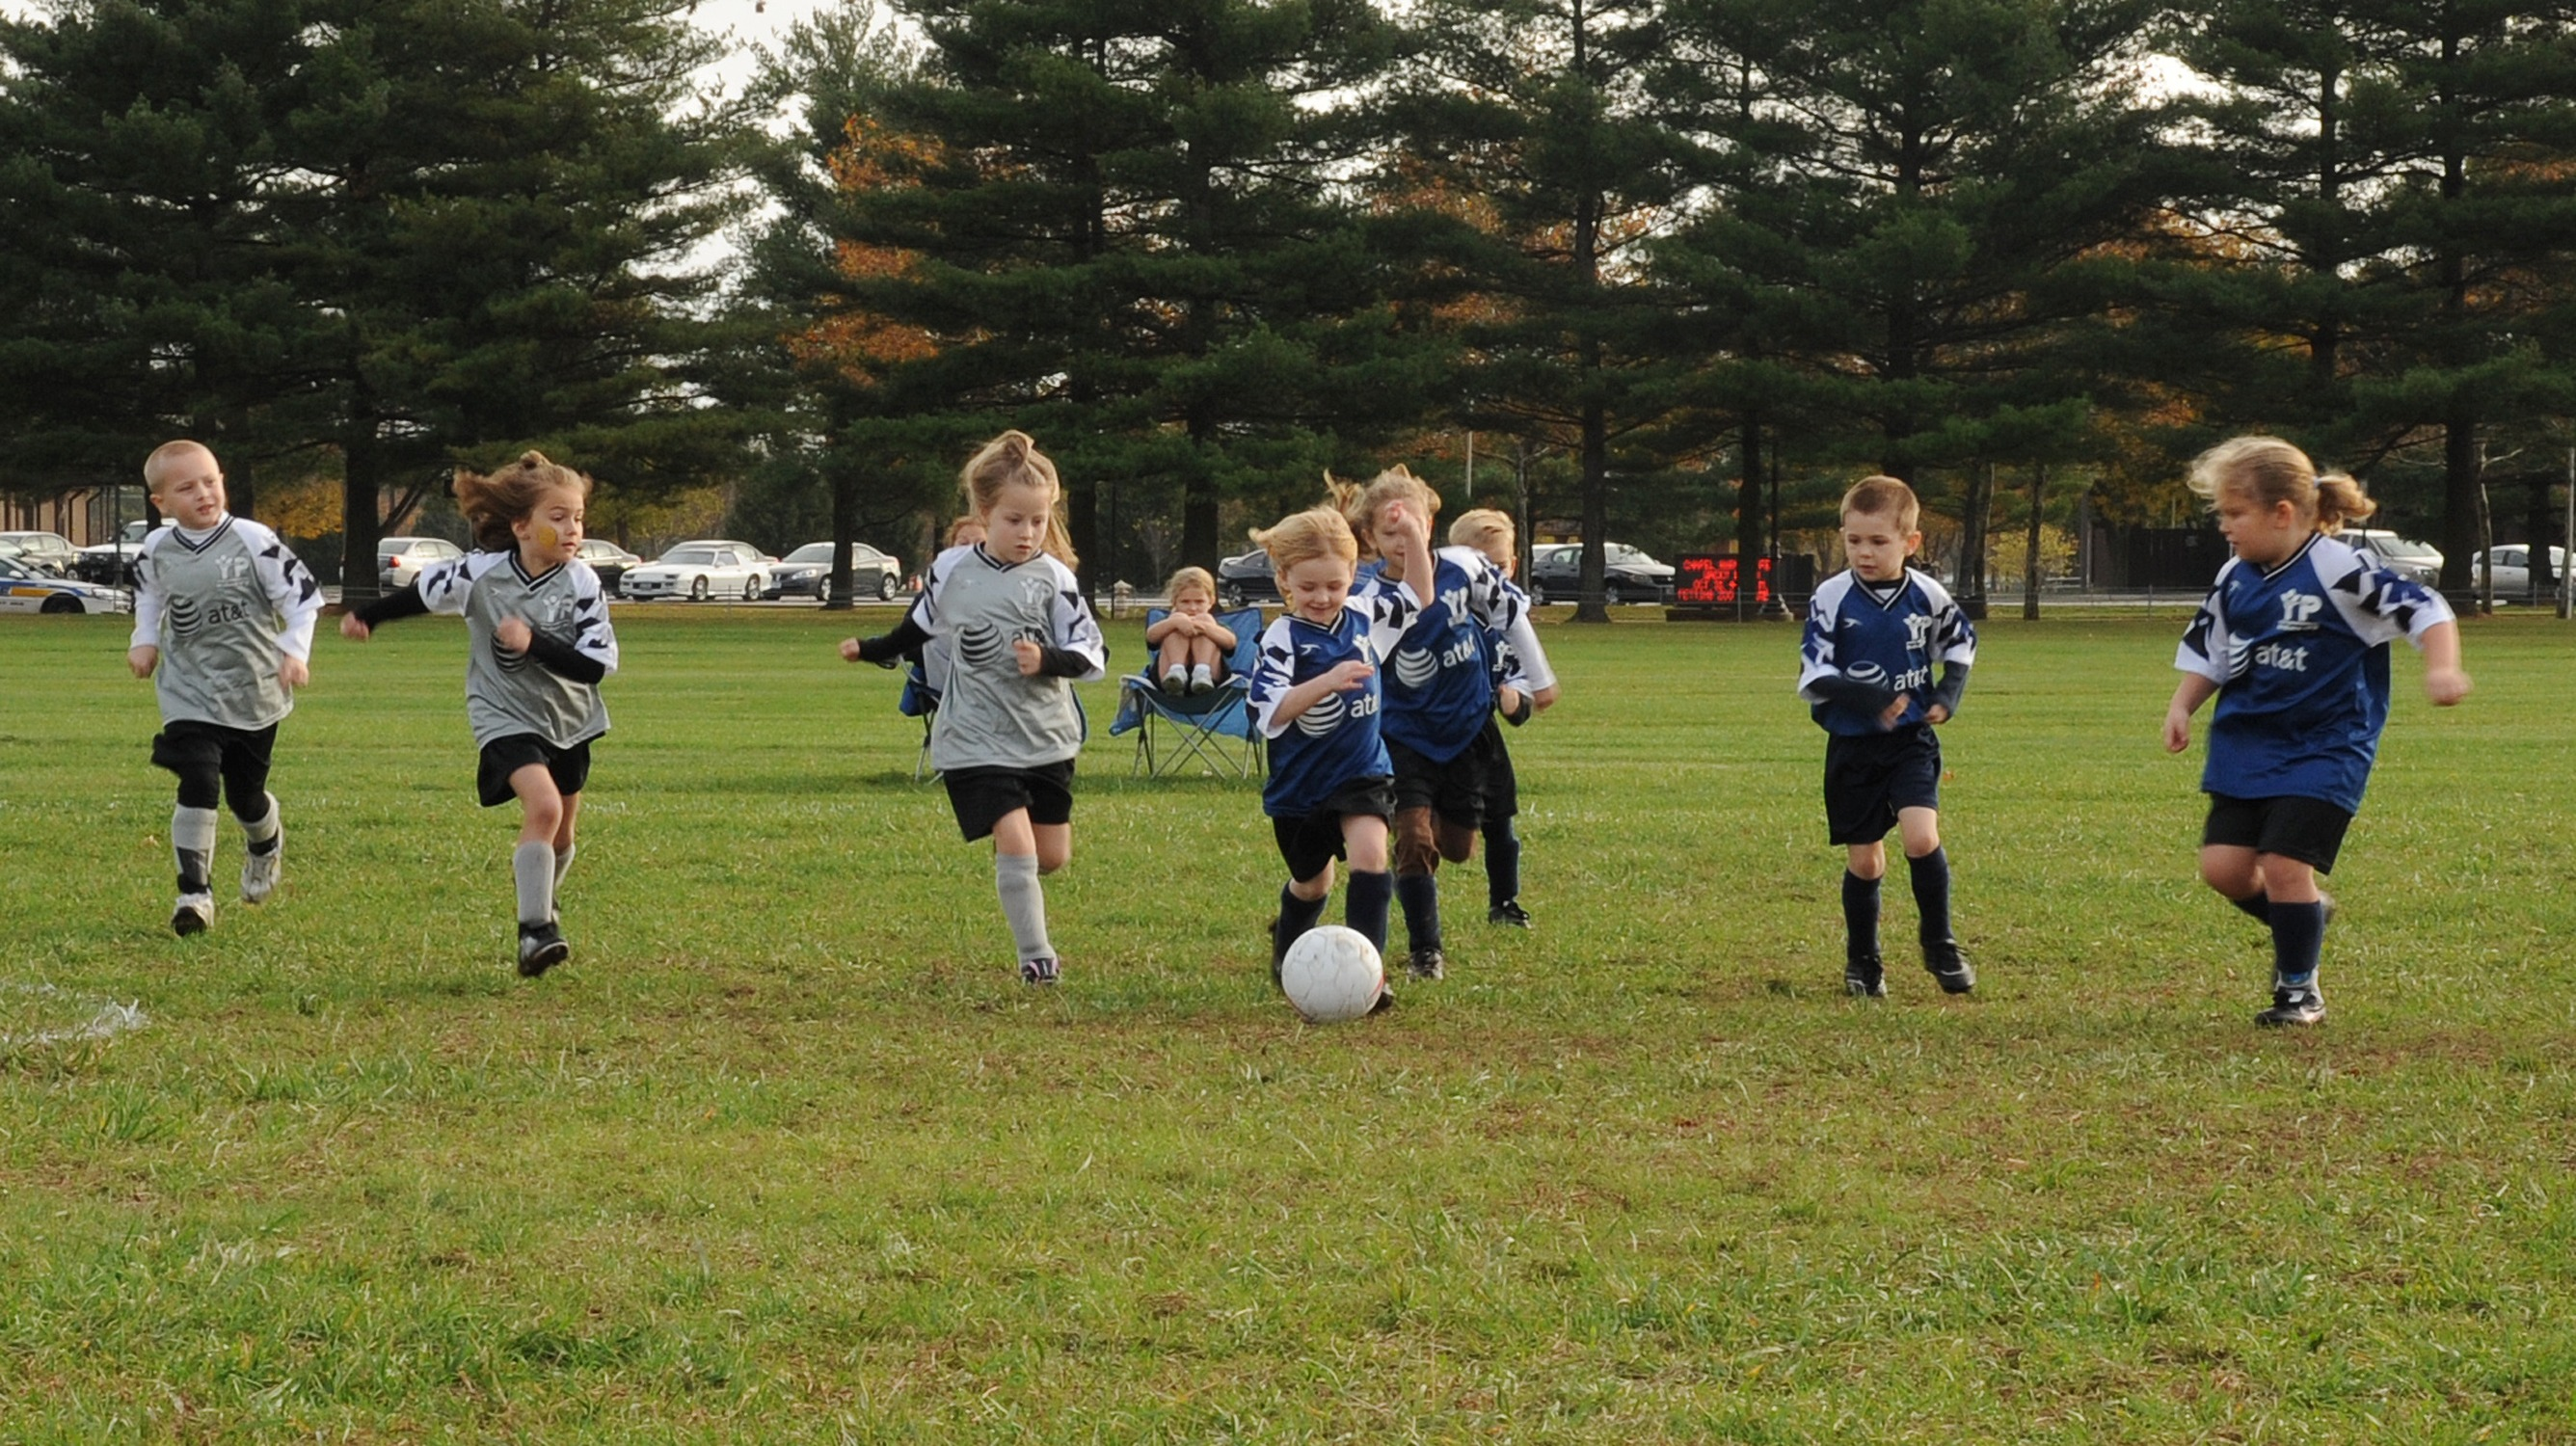 Soccer players show a finishing mentality as they plough through the mud and rain to compete in the final games of the Pee Wee League Saturday. Children interested in playing Youth Sports basketball can now register at the Youth Center.